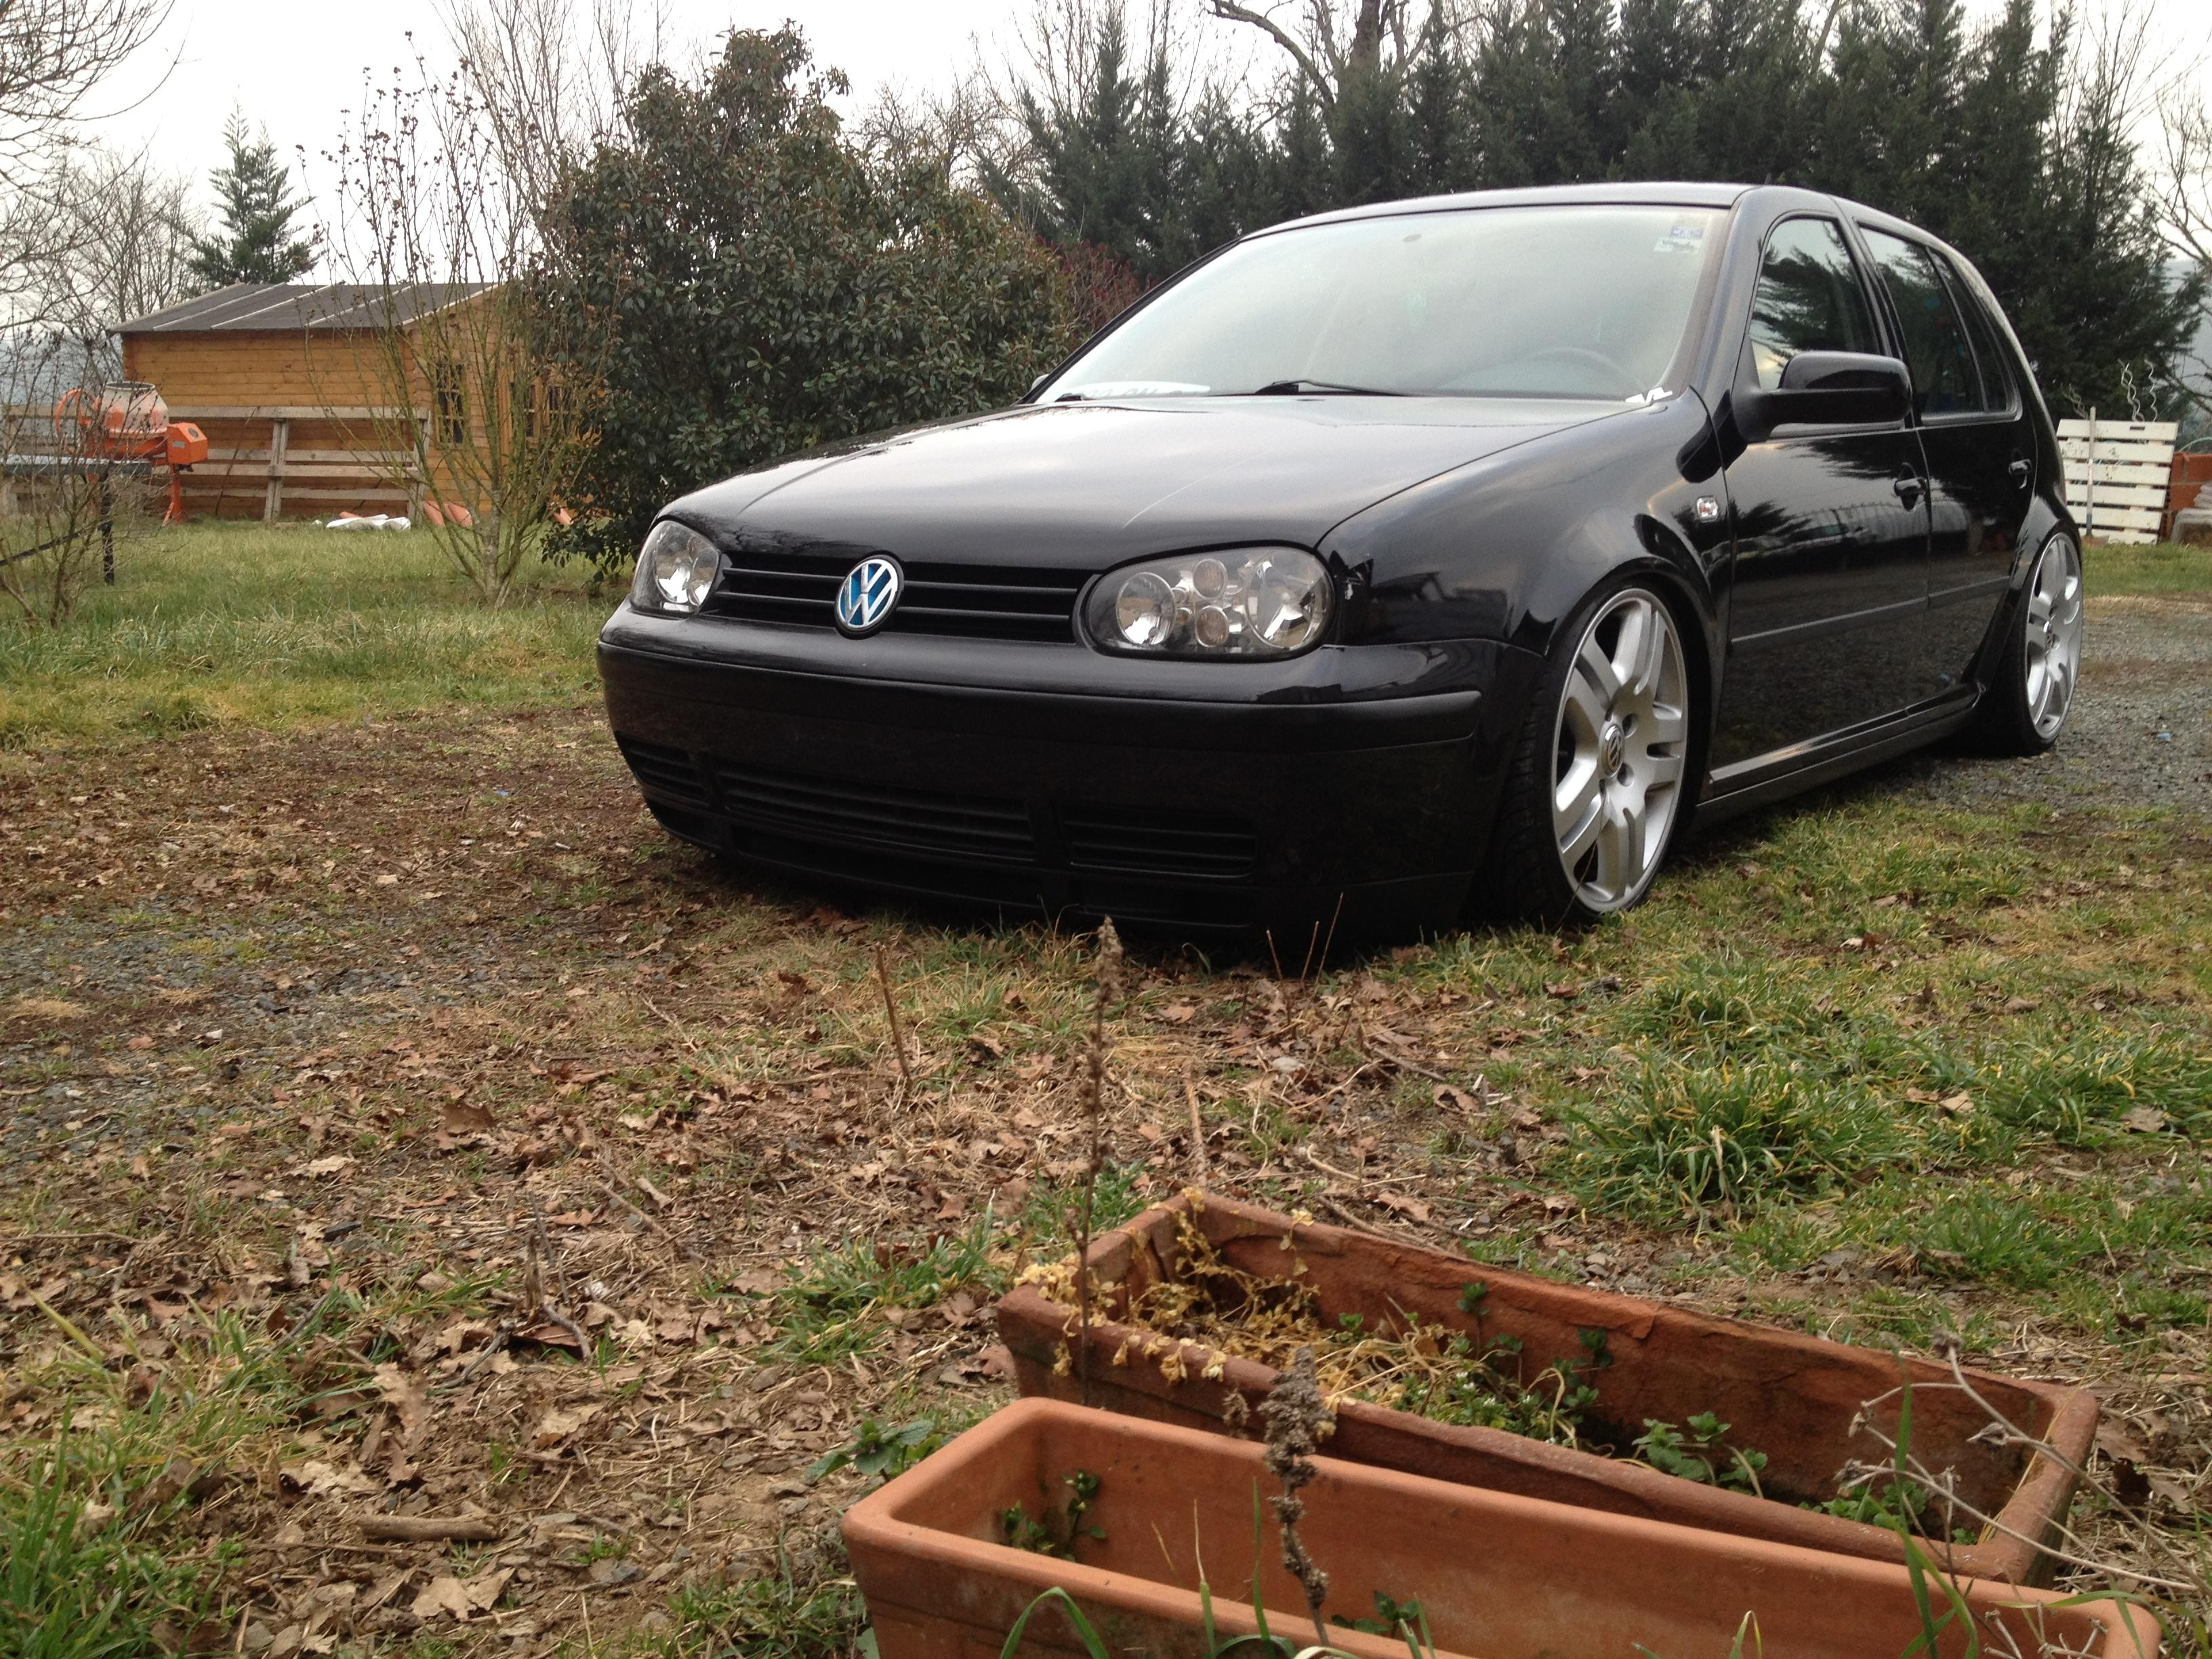 vw golf iv 1 6sr basis 2000 swap 1 8t garage des golf iv 1 6 1 6 16v page 24 forum. Black Bedroom Furniture Sets. Home Design Ideas